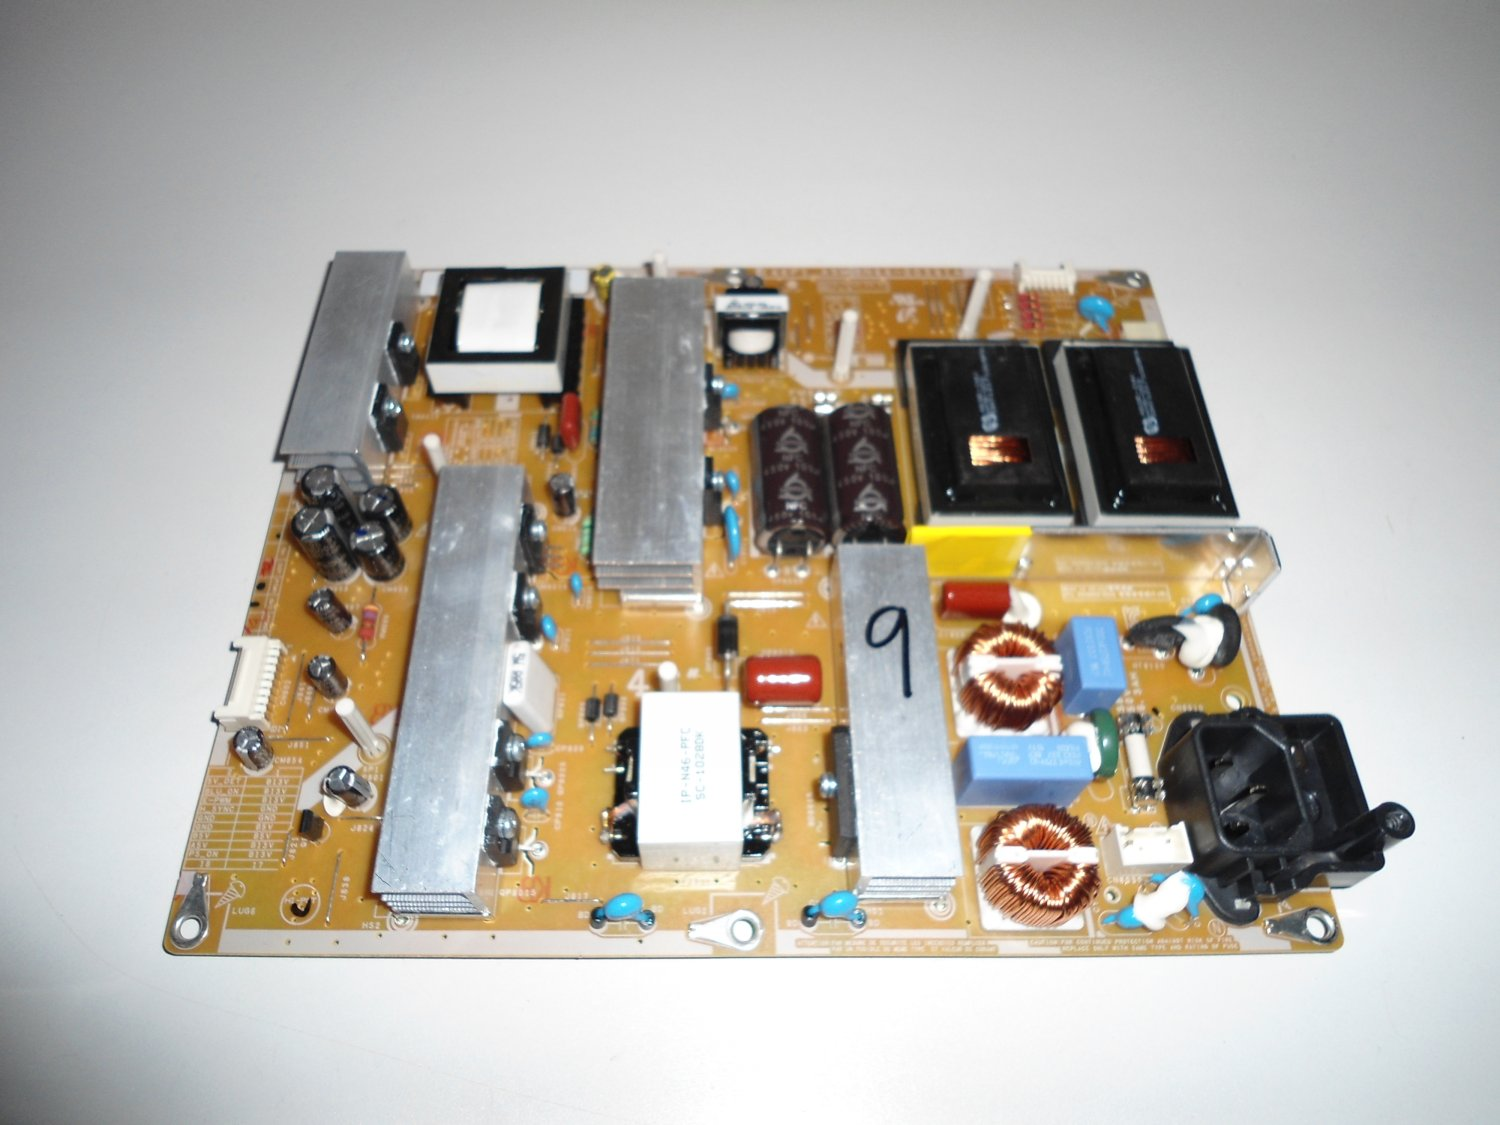 Samsung BN44-00341A Power Supply (Sold Out)